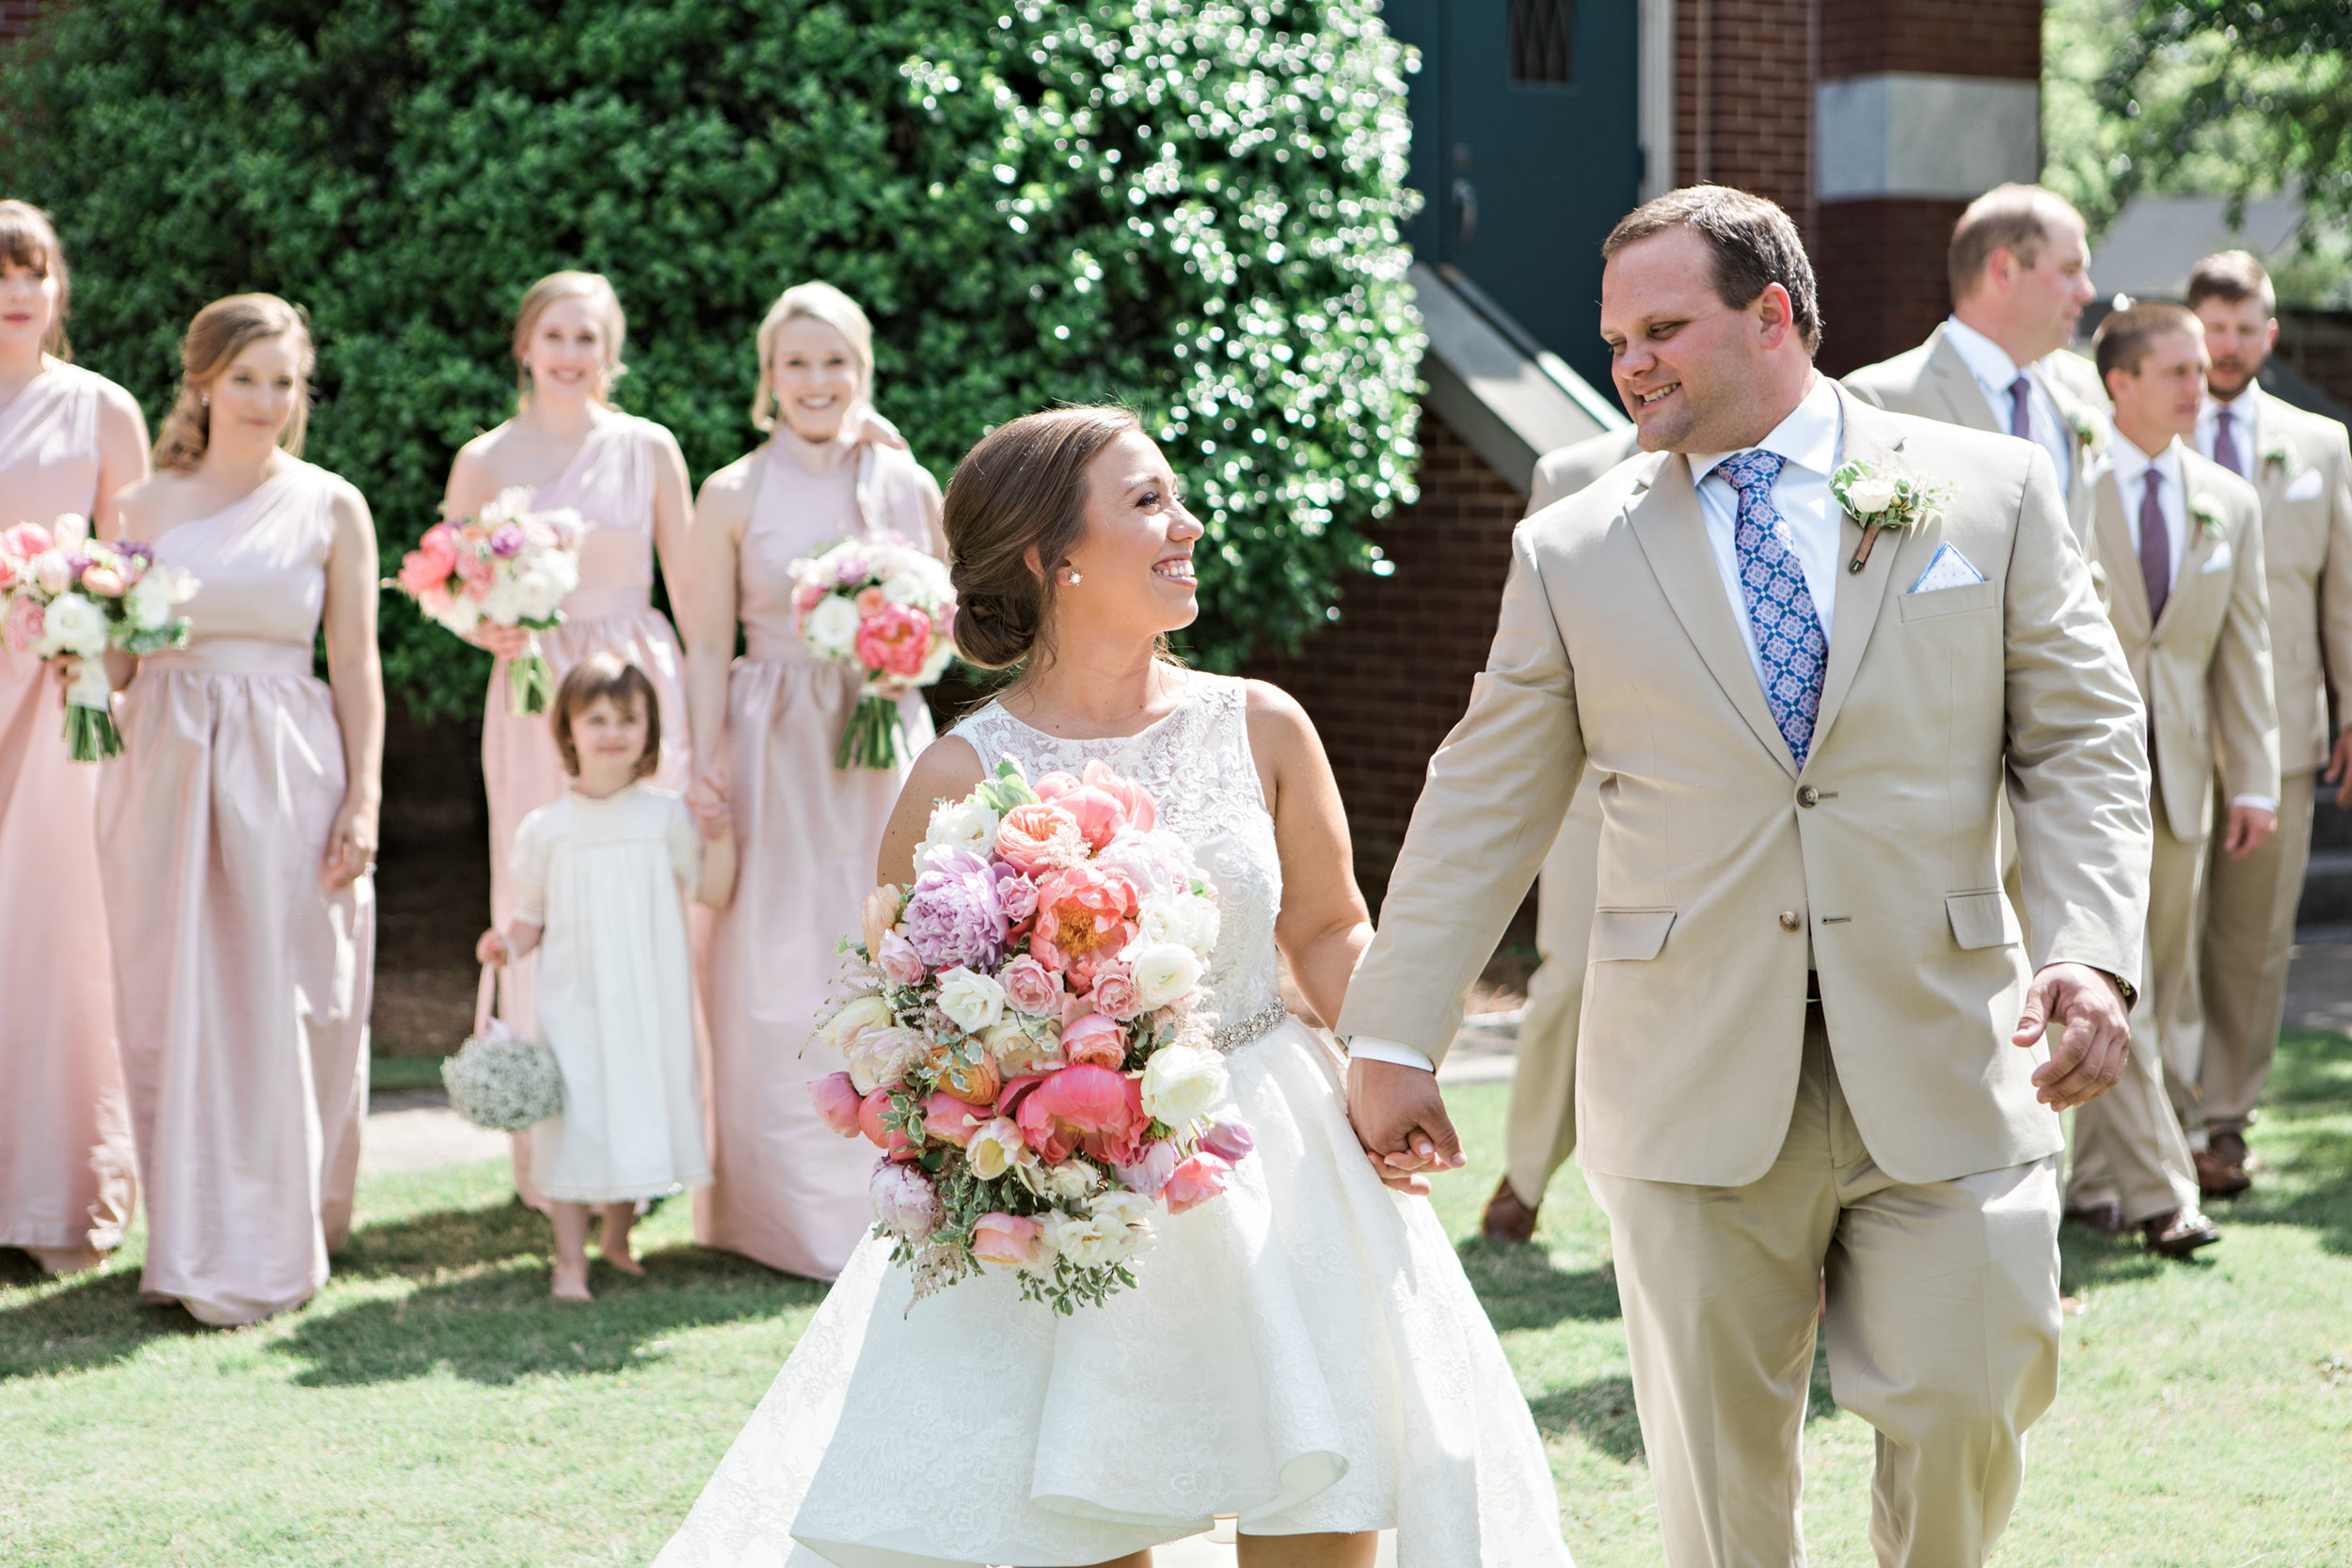 Alabama-Wedding-Photographers-Nick-Drollette-Hailey and Reed-116.jpg